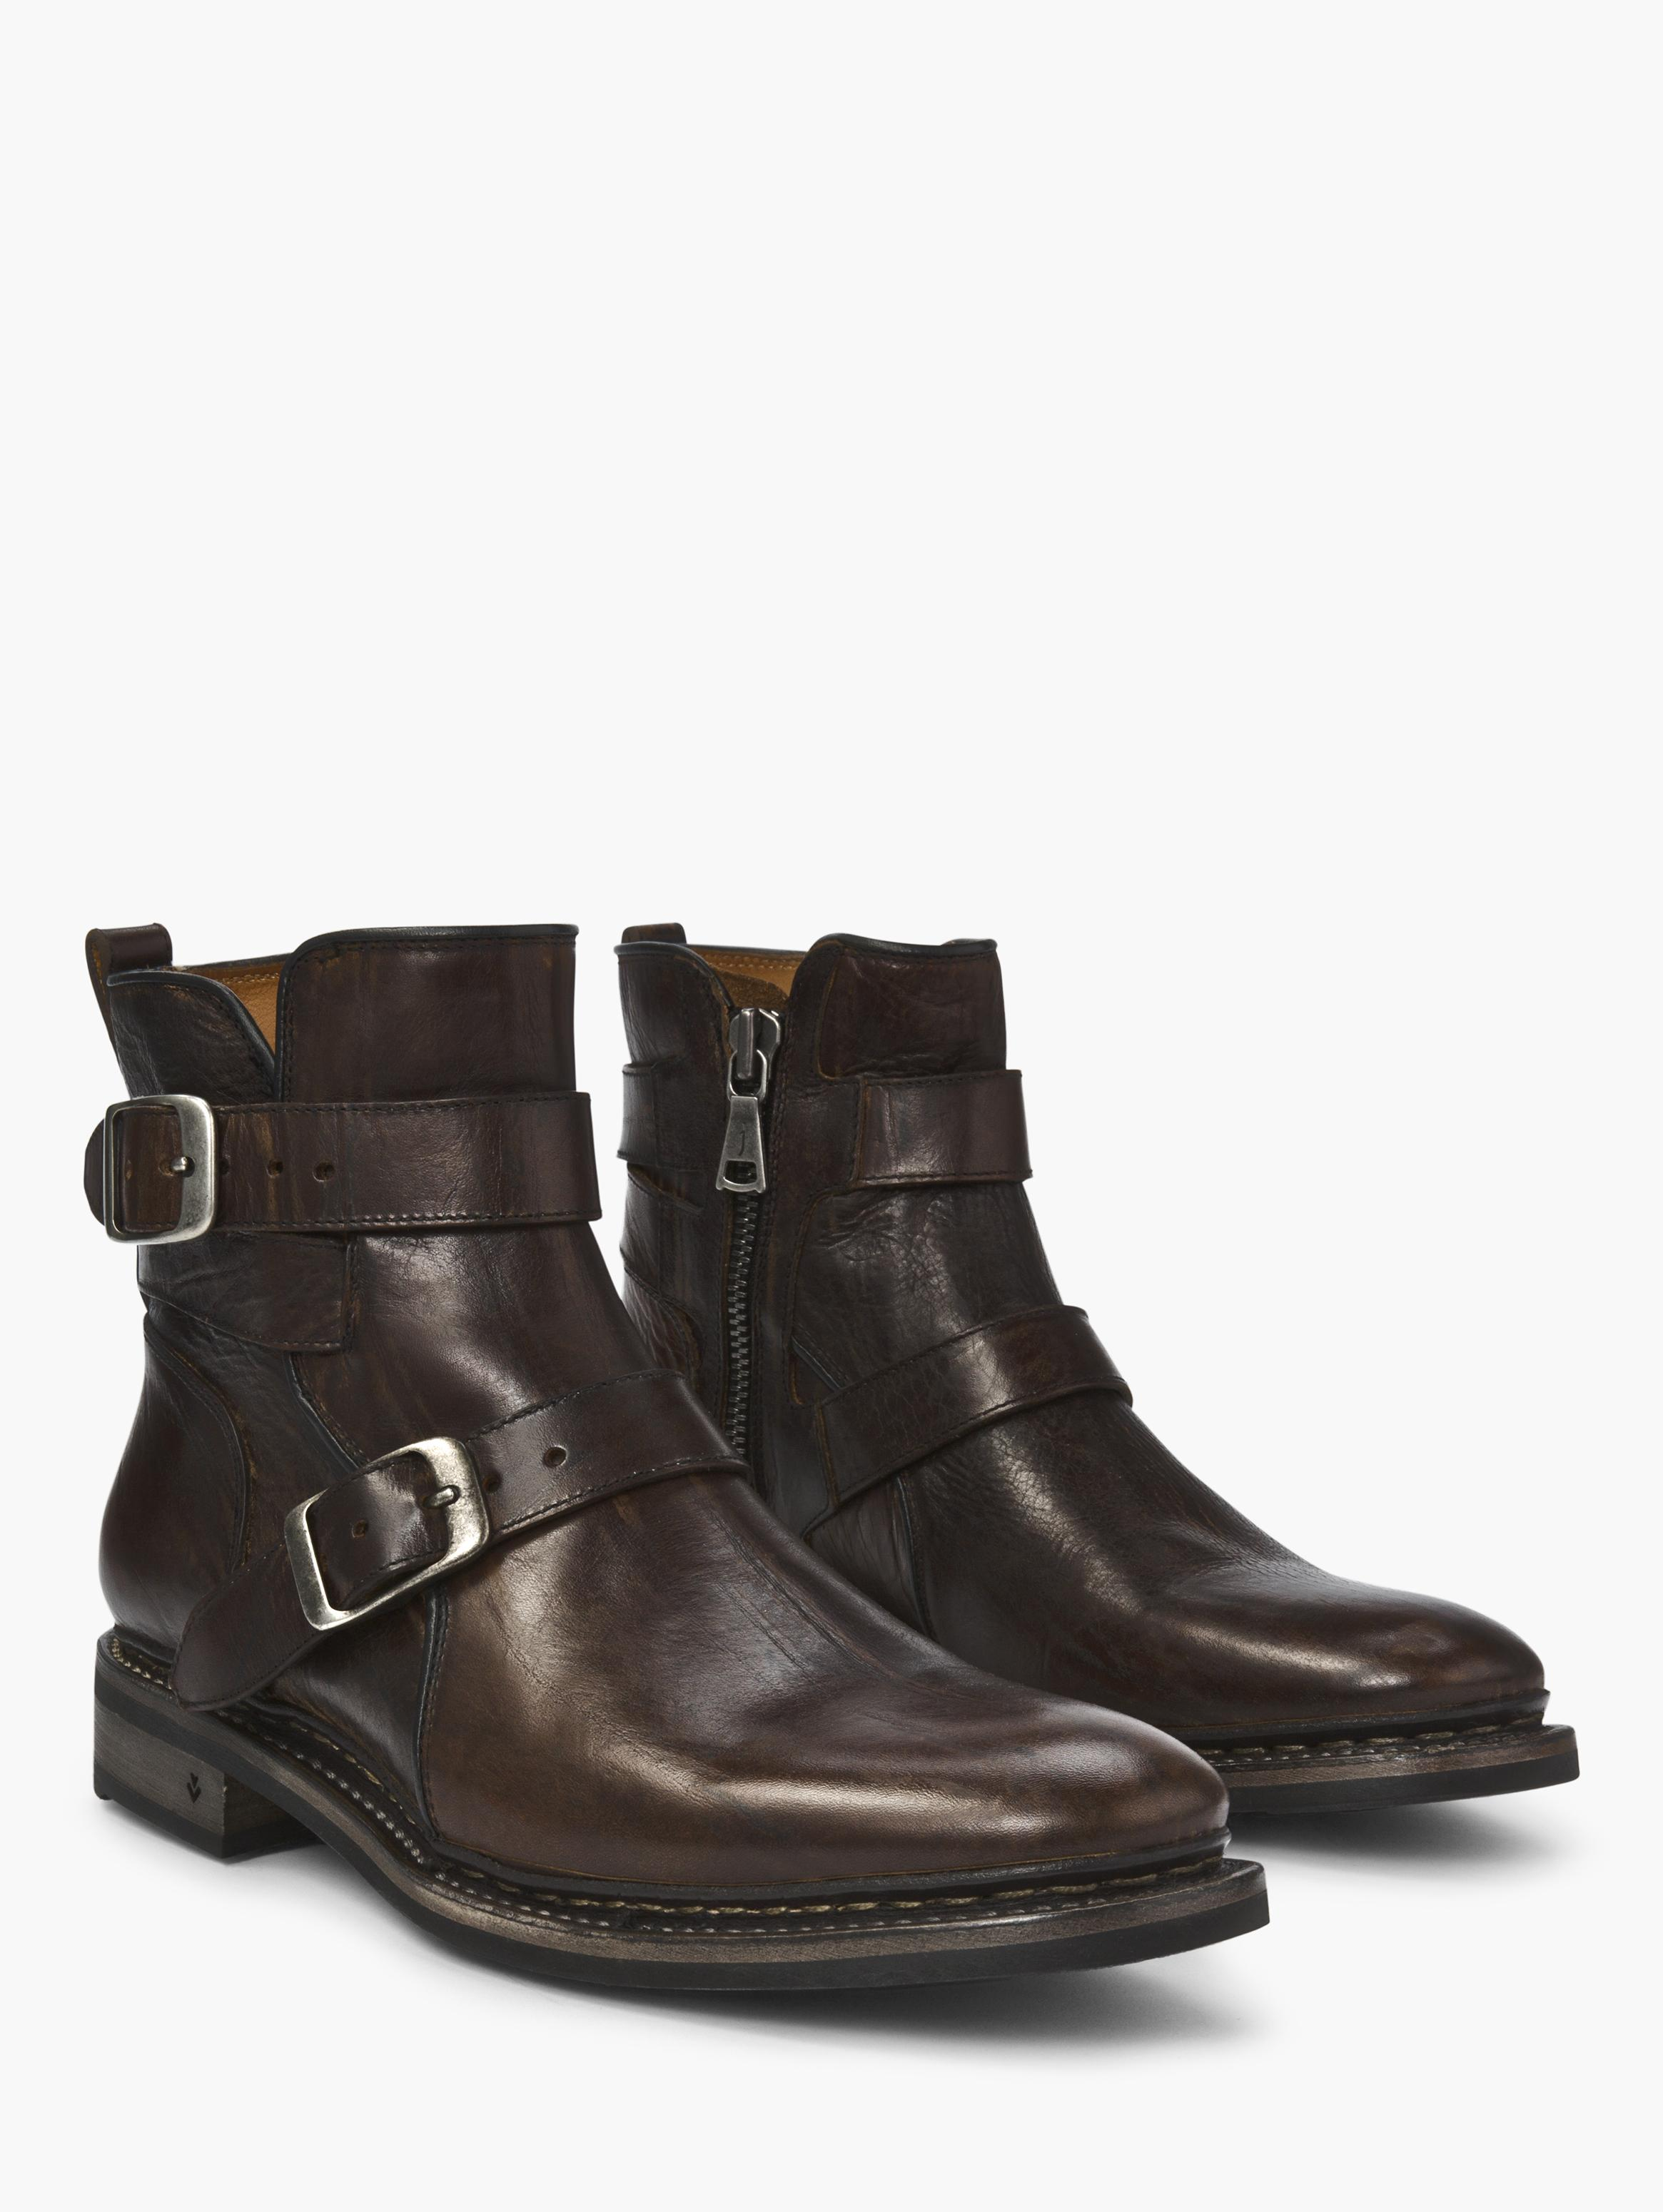 Norwegian Buckle Boot